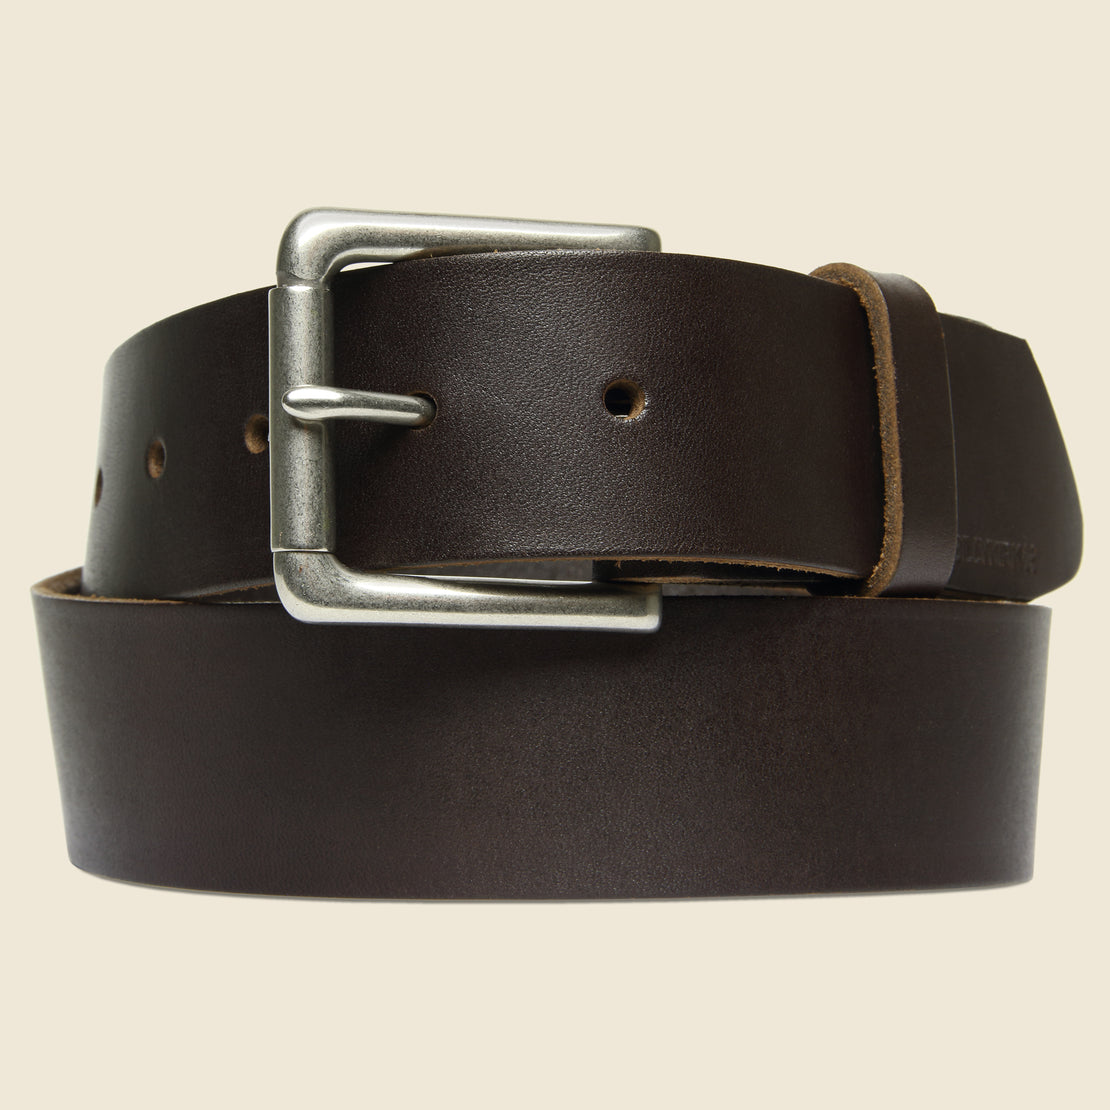 BILLYKIRK Nickel Roller Bar Belt - Brown